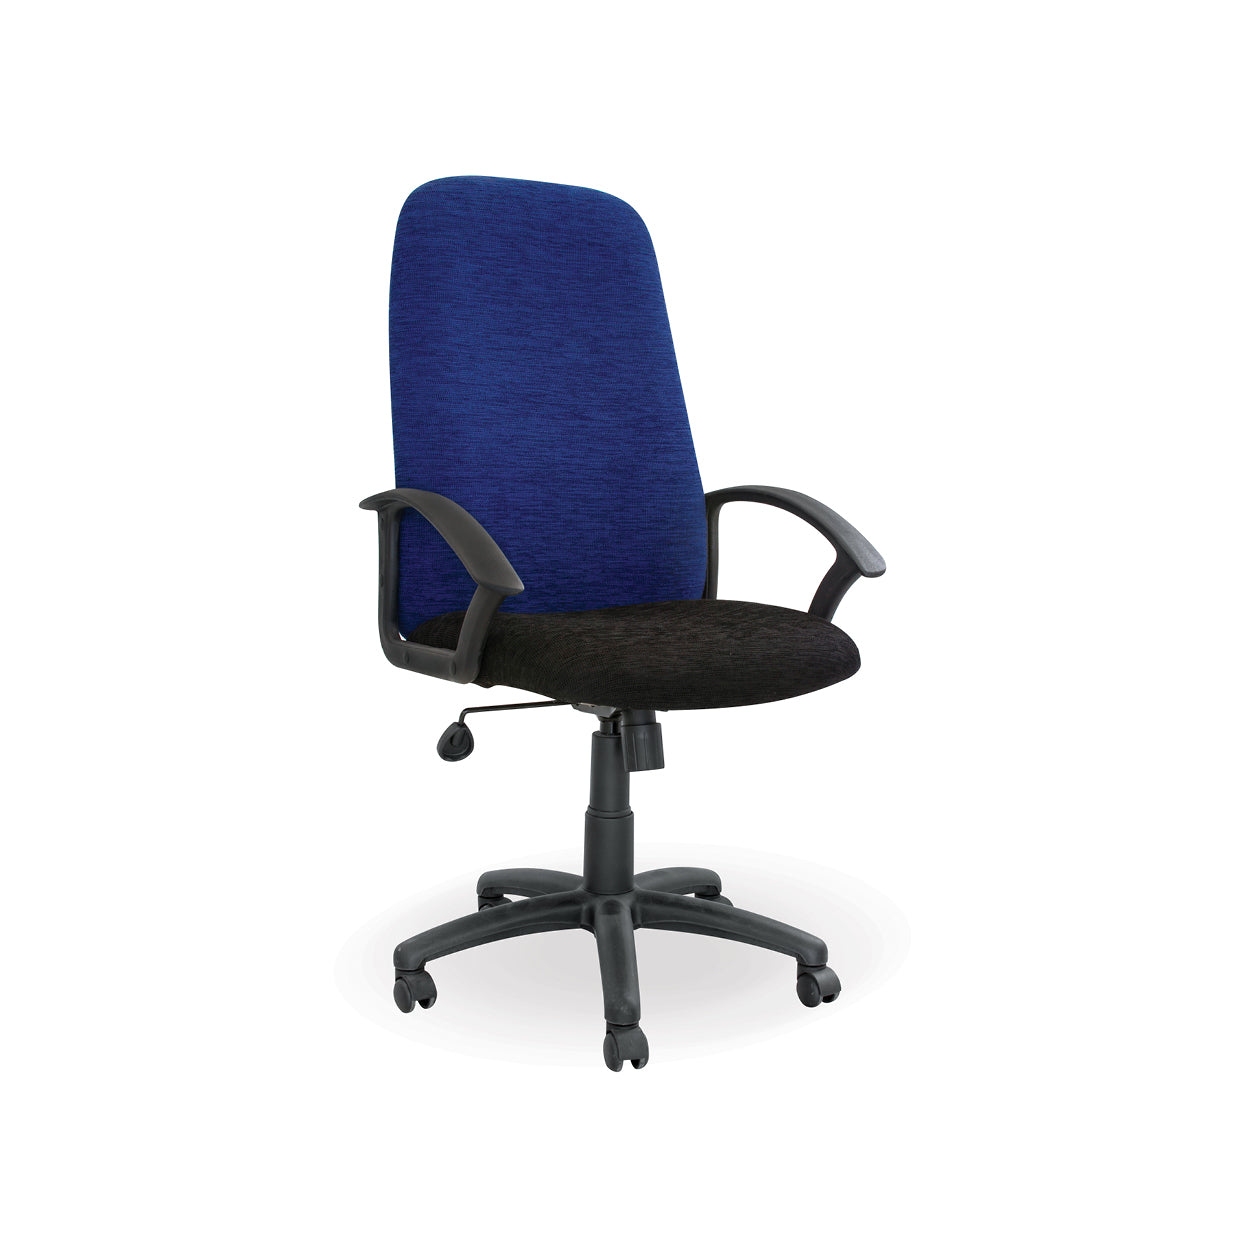 Hedcor Montego High back office chair